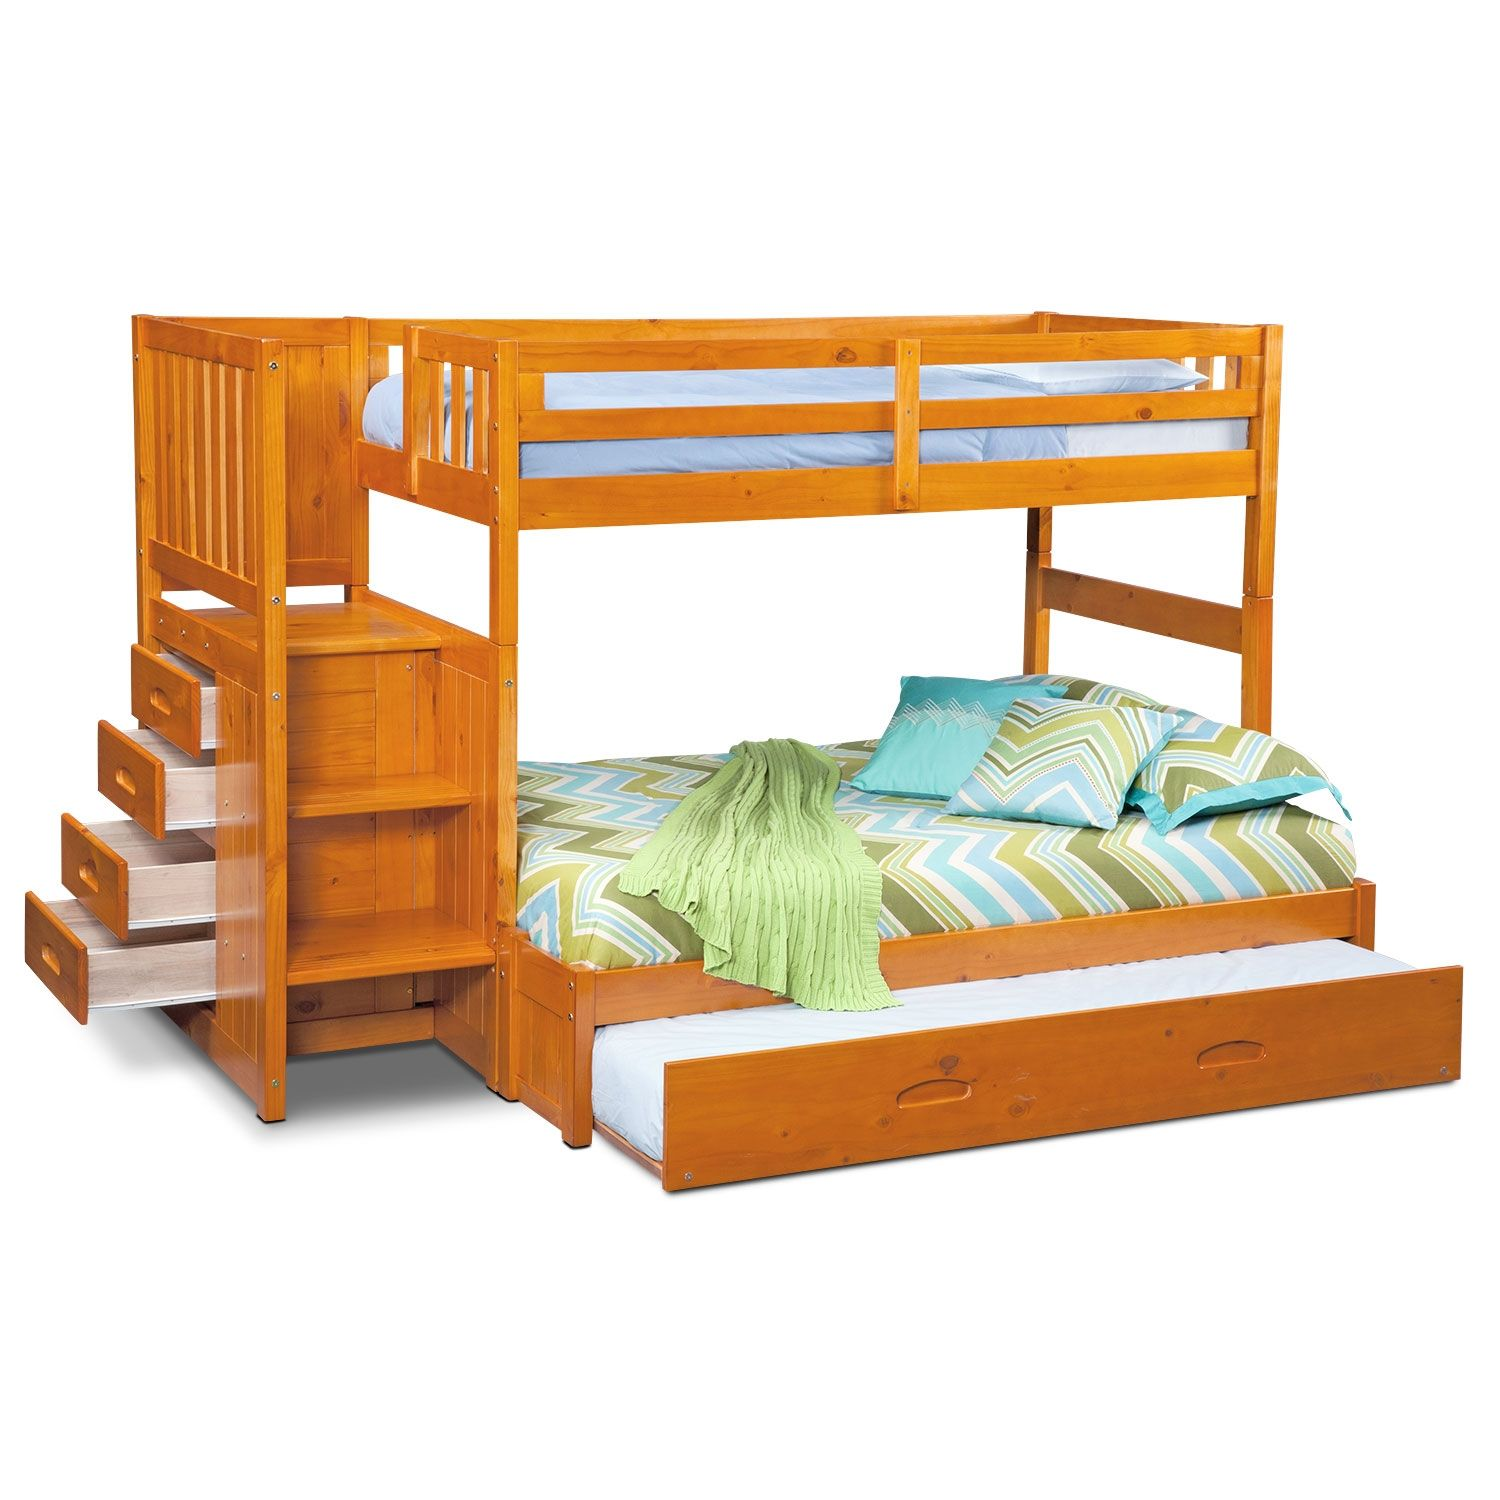 Furniture City Bunk Beds Cheaper Than Retail Price Buy Clothing Accessories And Lifestyle Products For Women Men